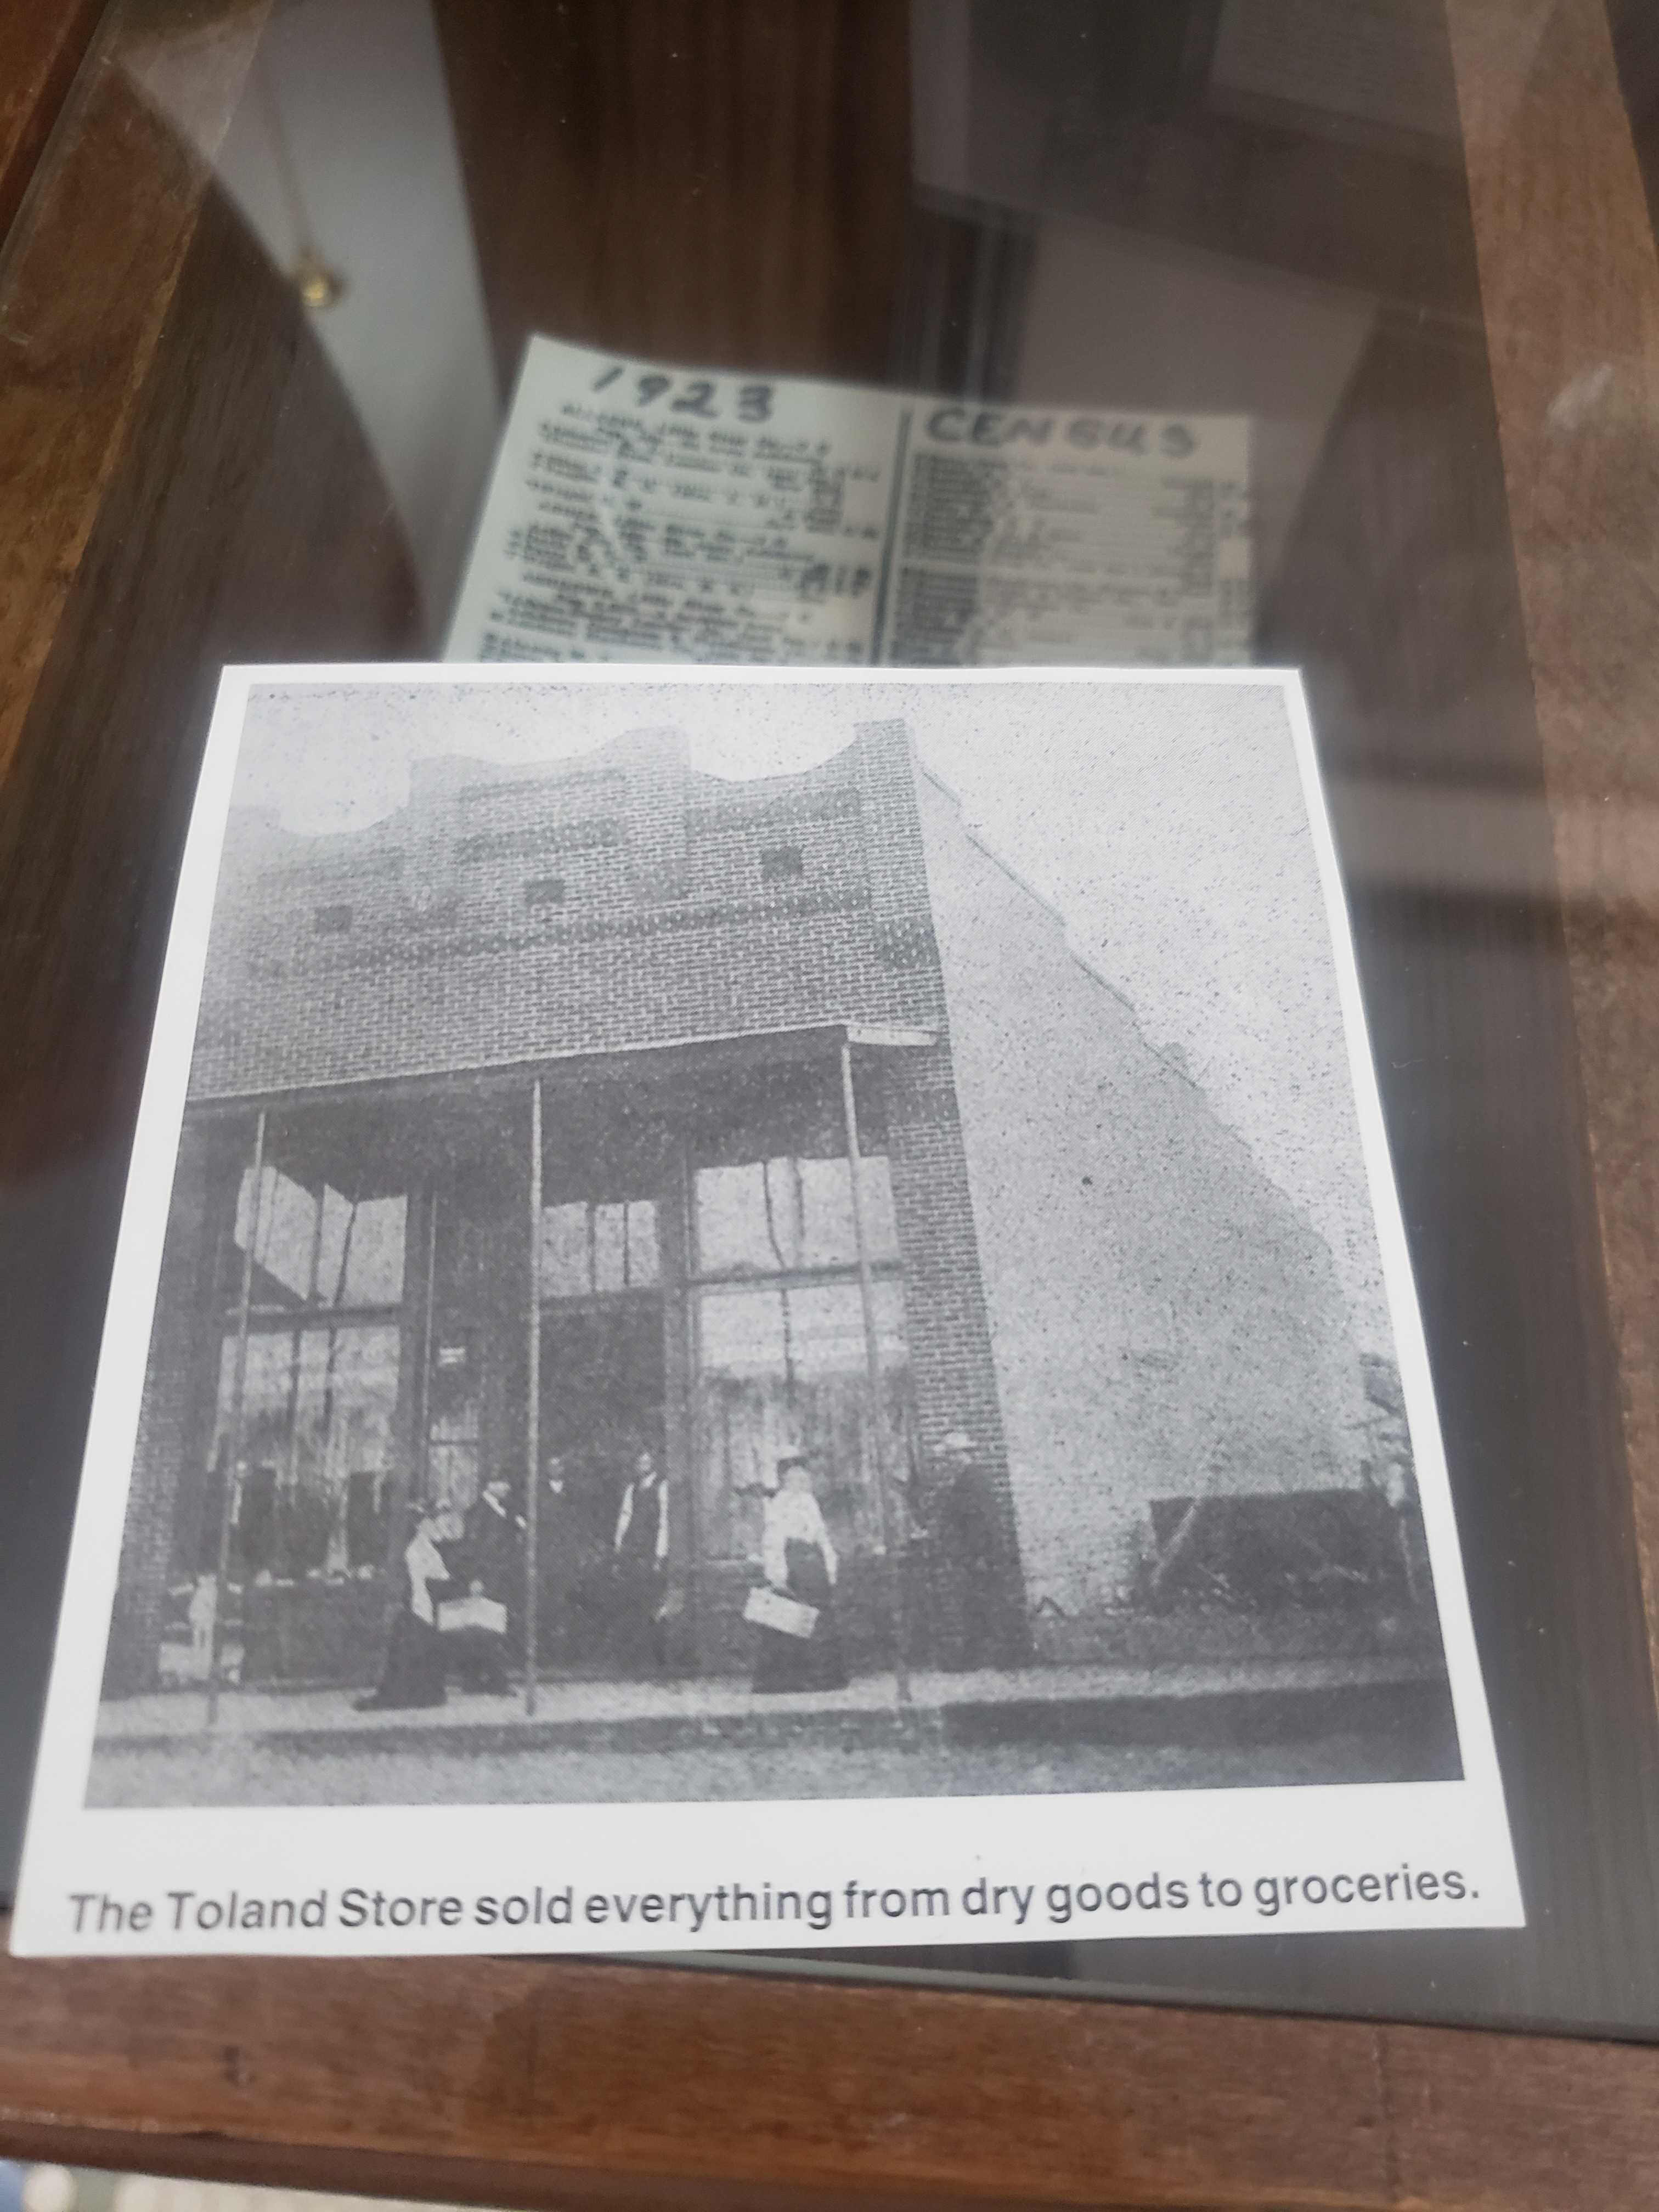 Toland Store sold everything from dry goods to groceries.